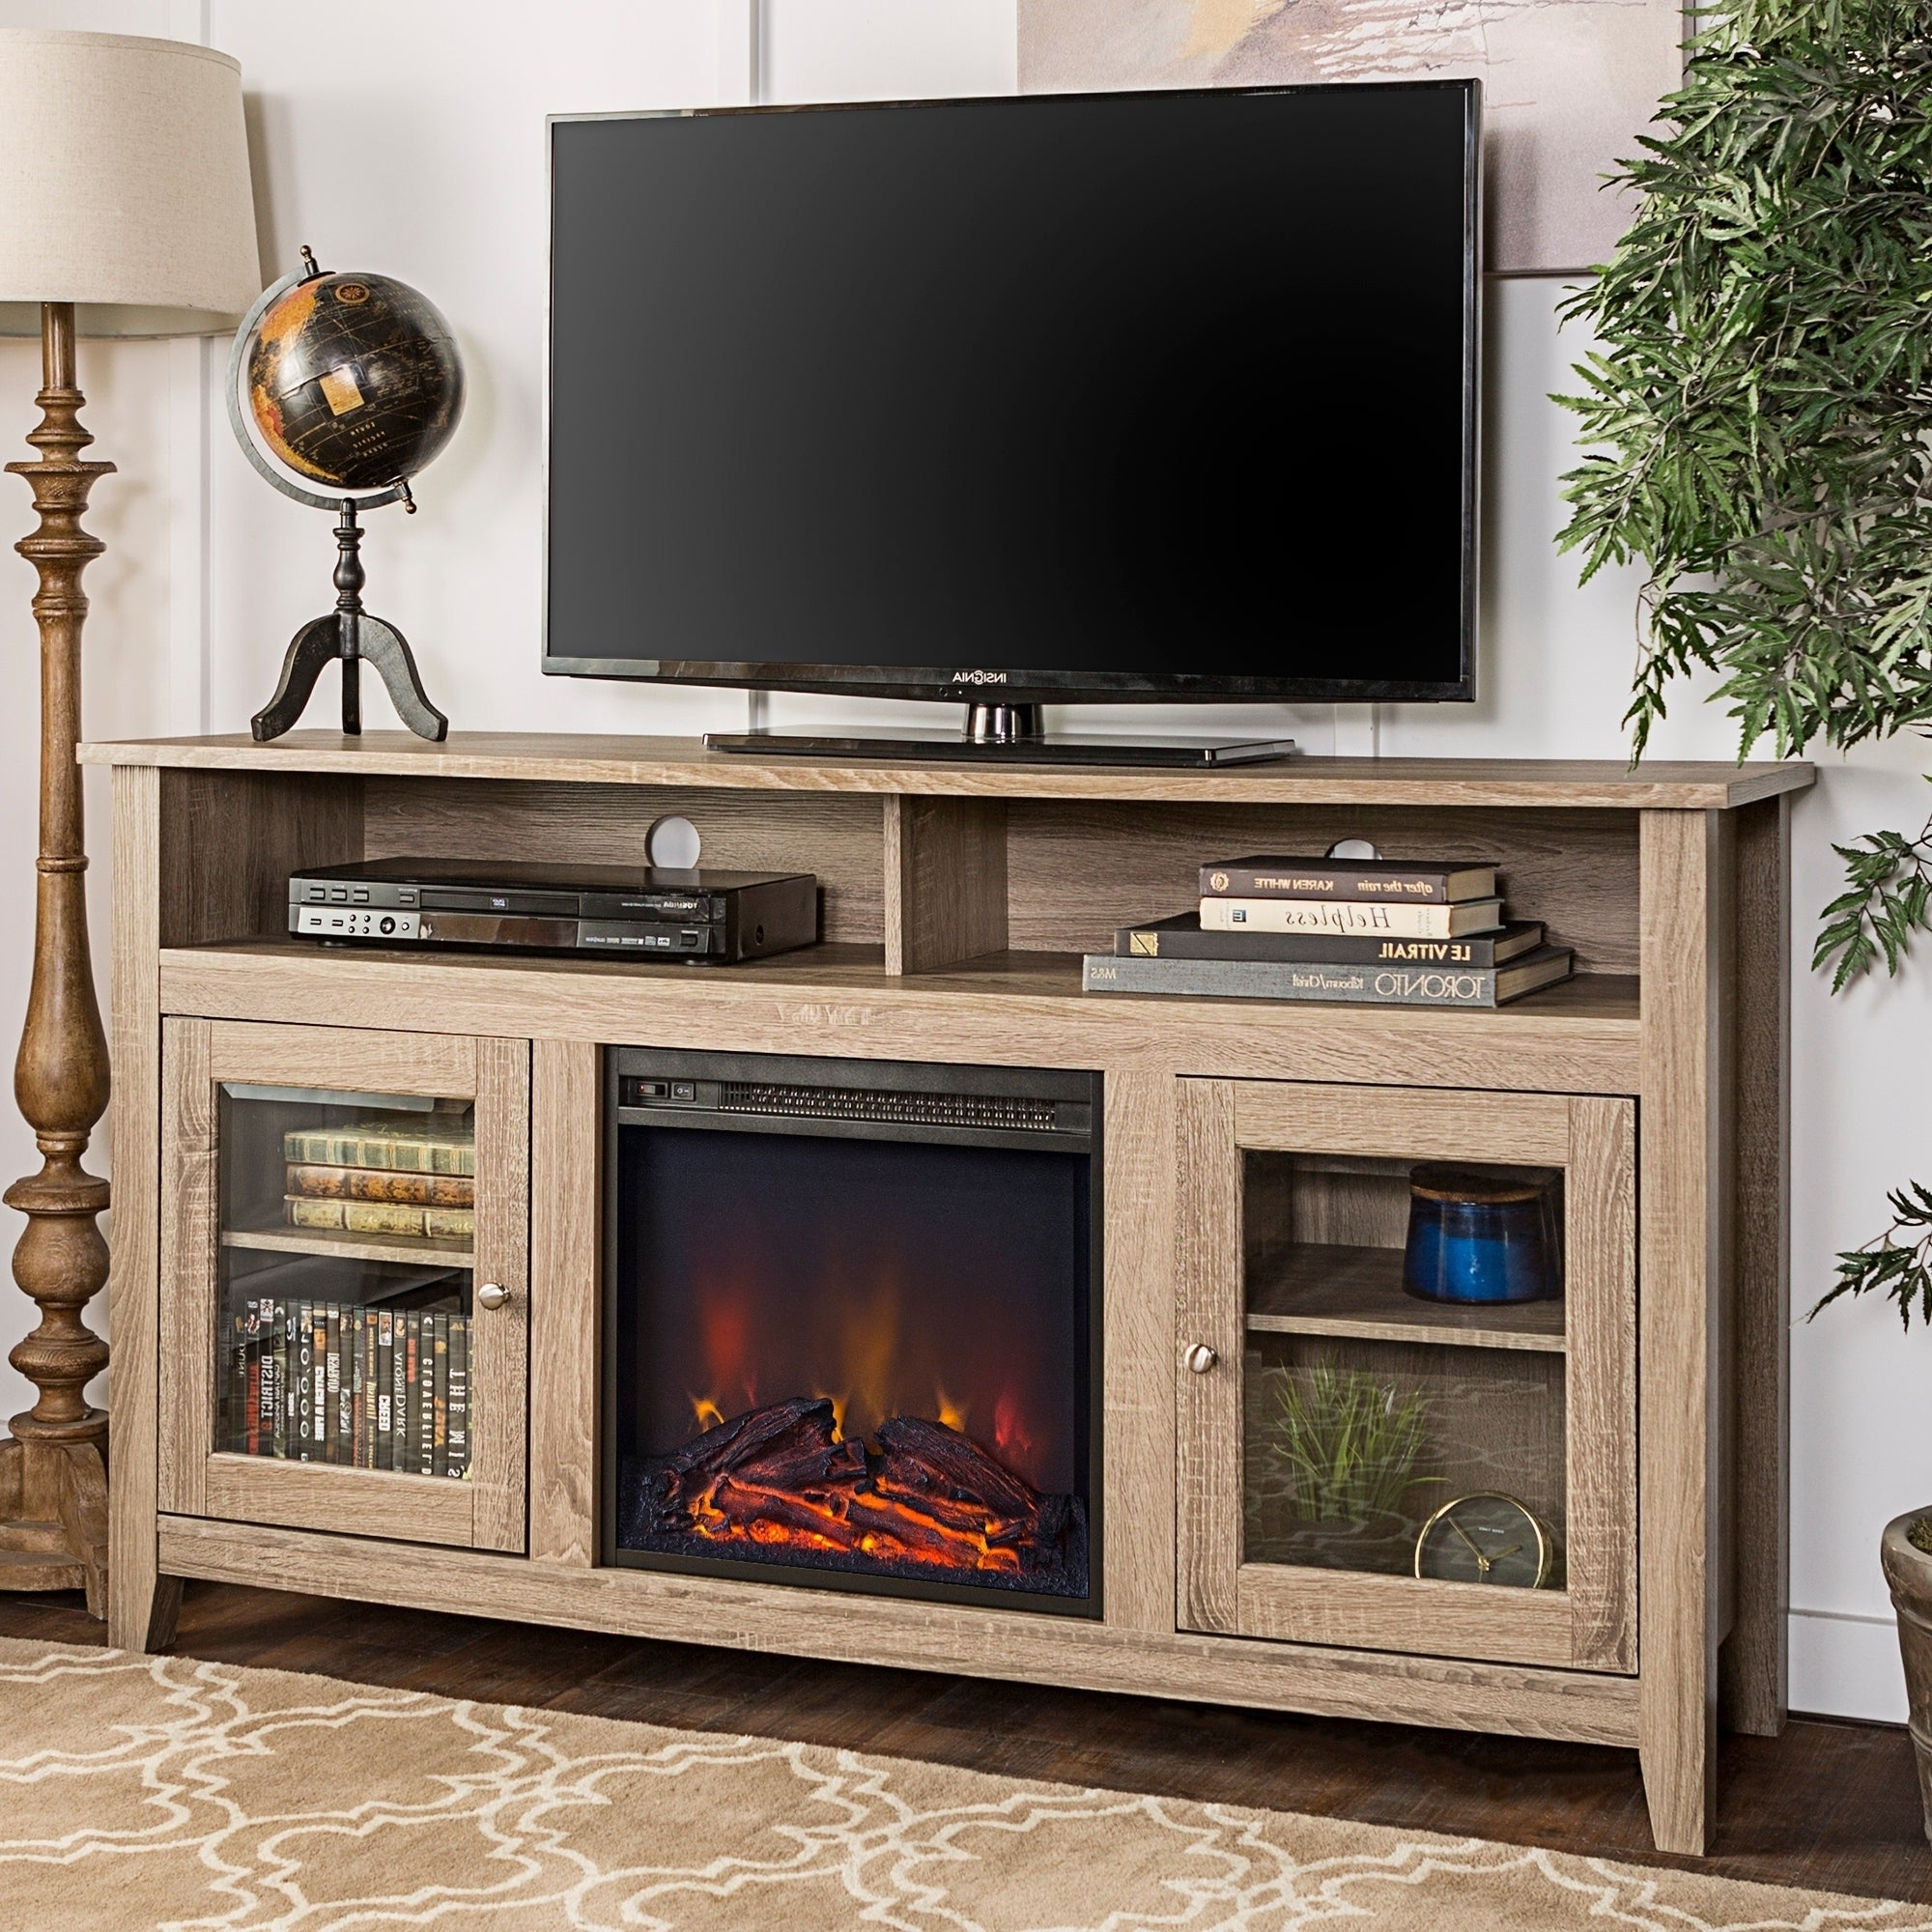 """Middlebrook Designs 58 Inch Driftwood Highboy Fireplace Tv Within Most Up To Date Broward Tv Stands For Tvs Up To 70"""" (View 3 of 25)"""